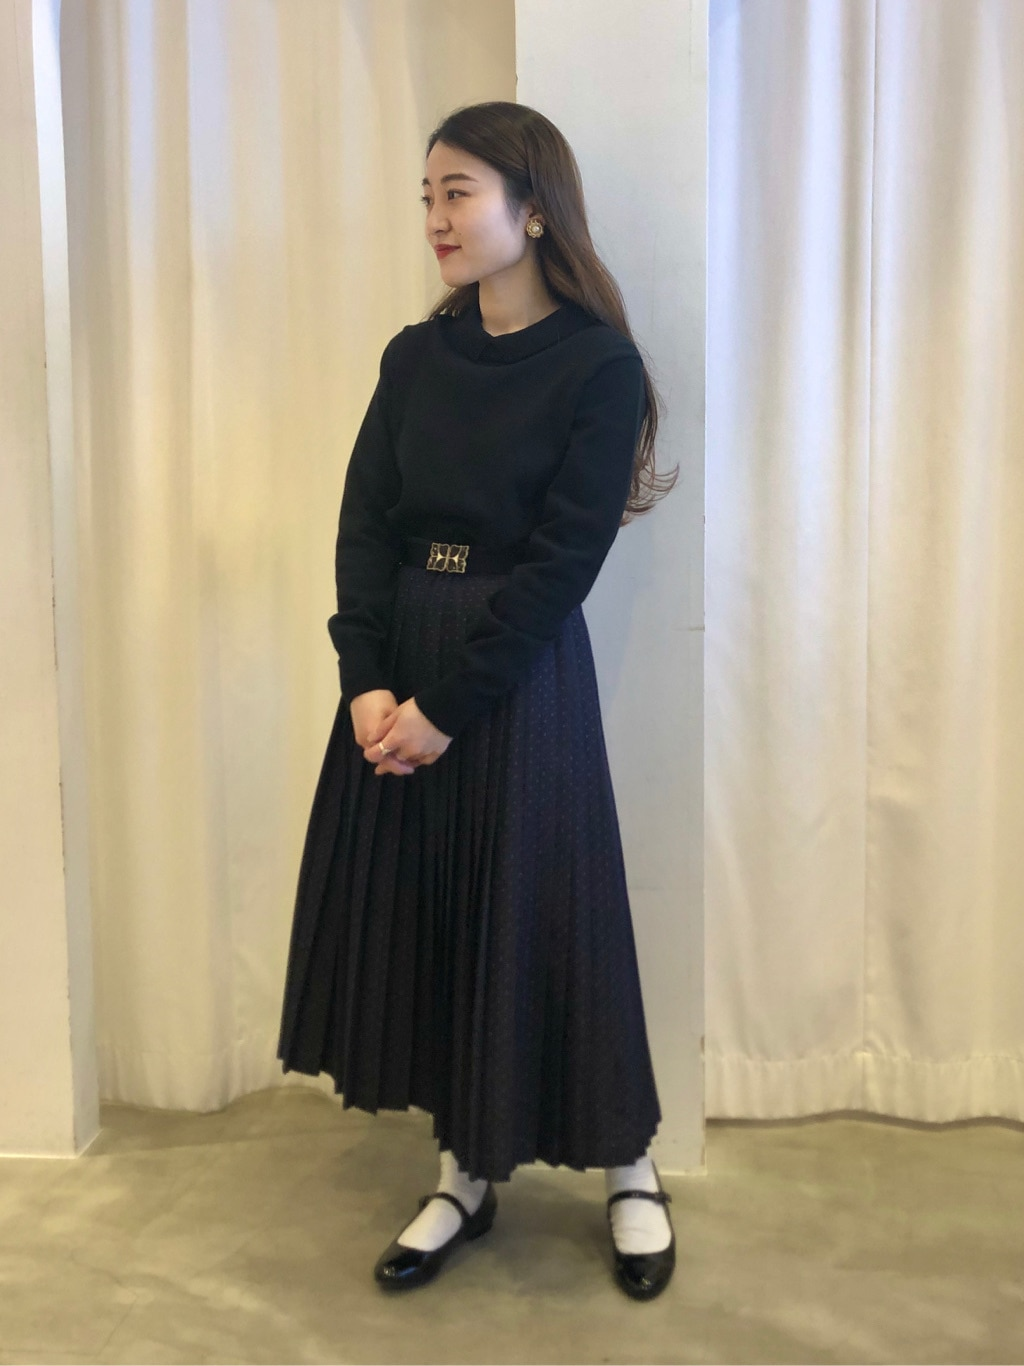 Dot and Stripes CHILD WOMAN ラフォーレ原宿 身長:153cm 2021.02.04